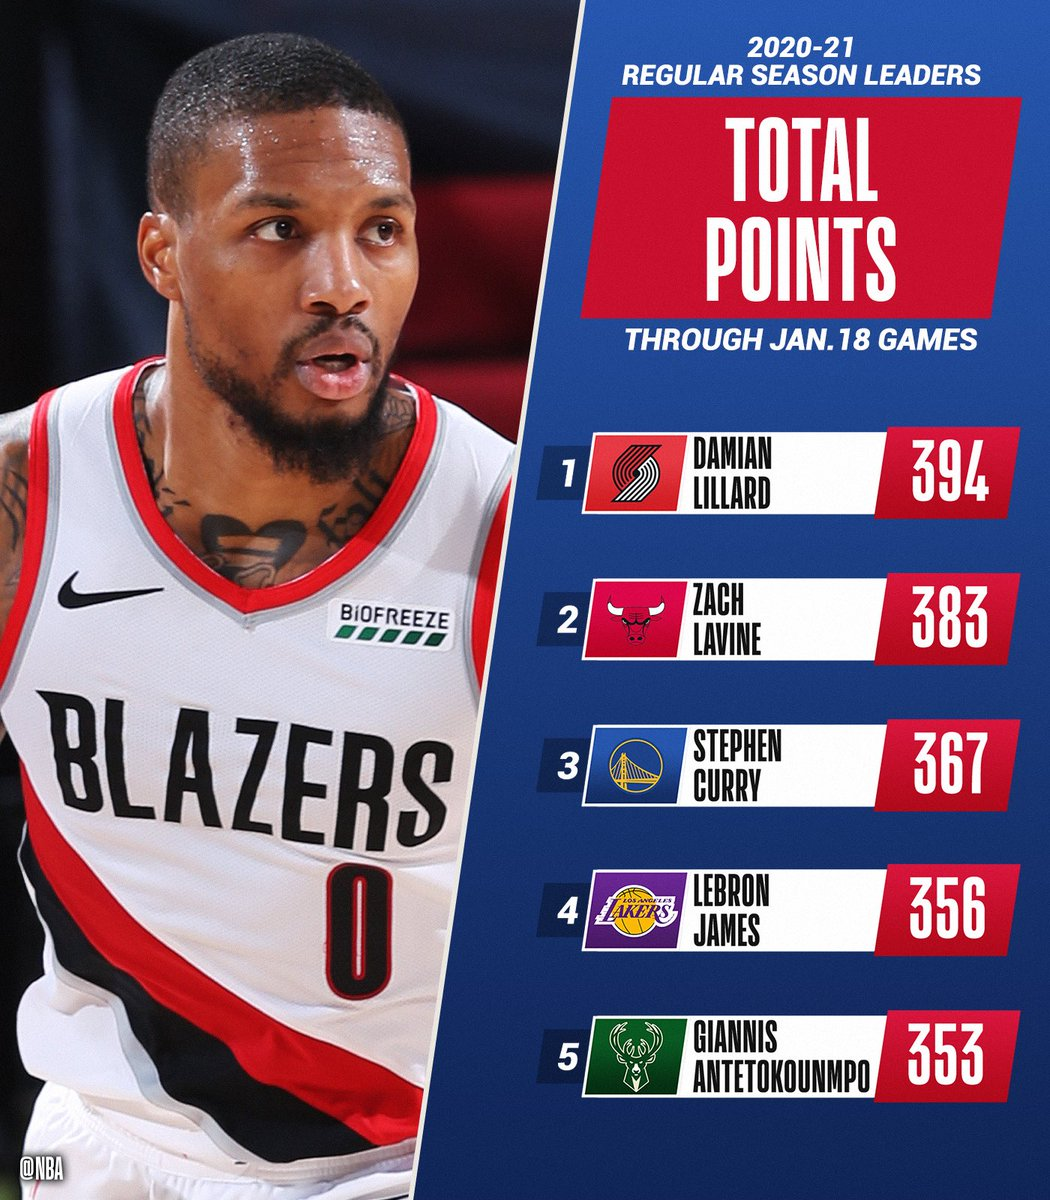 The TOTAL POINTS and POINTS PER GAME leaders of the @NBA season through 1/18.   📊: https://t.co/08UxK3OOU6 https://t.co/8FYoI2c0So